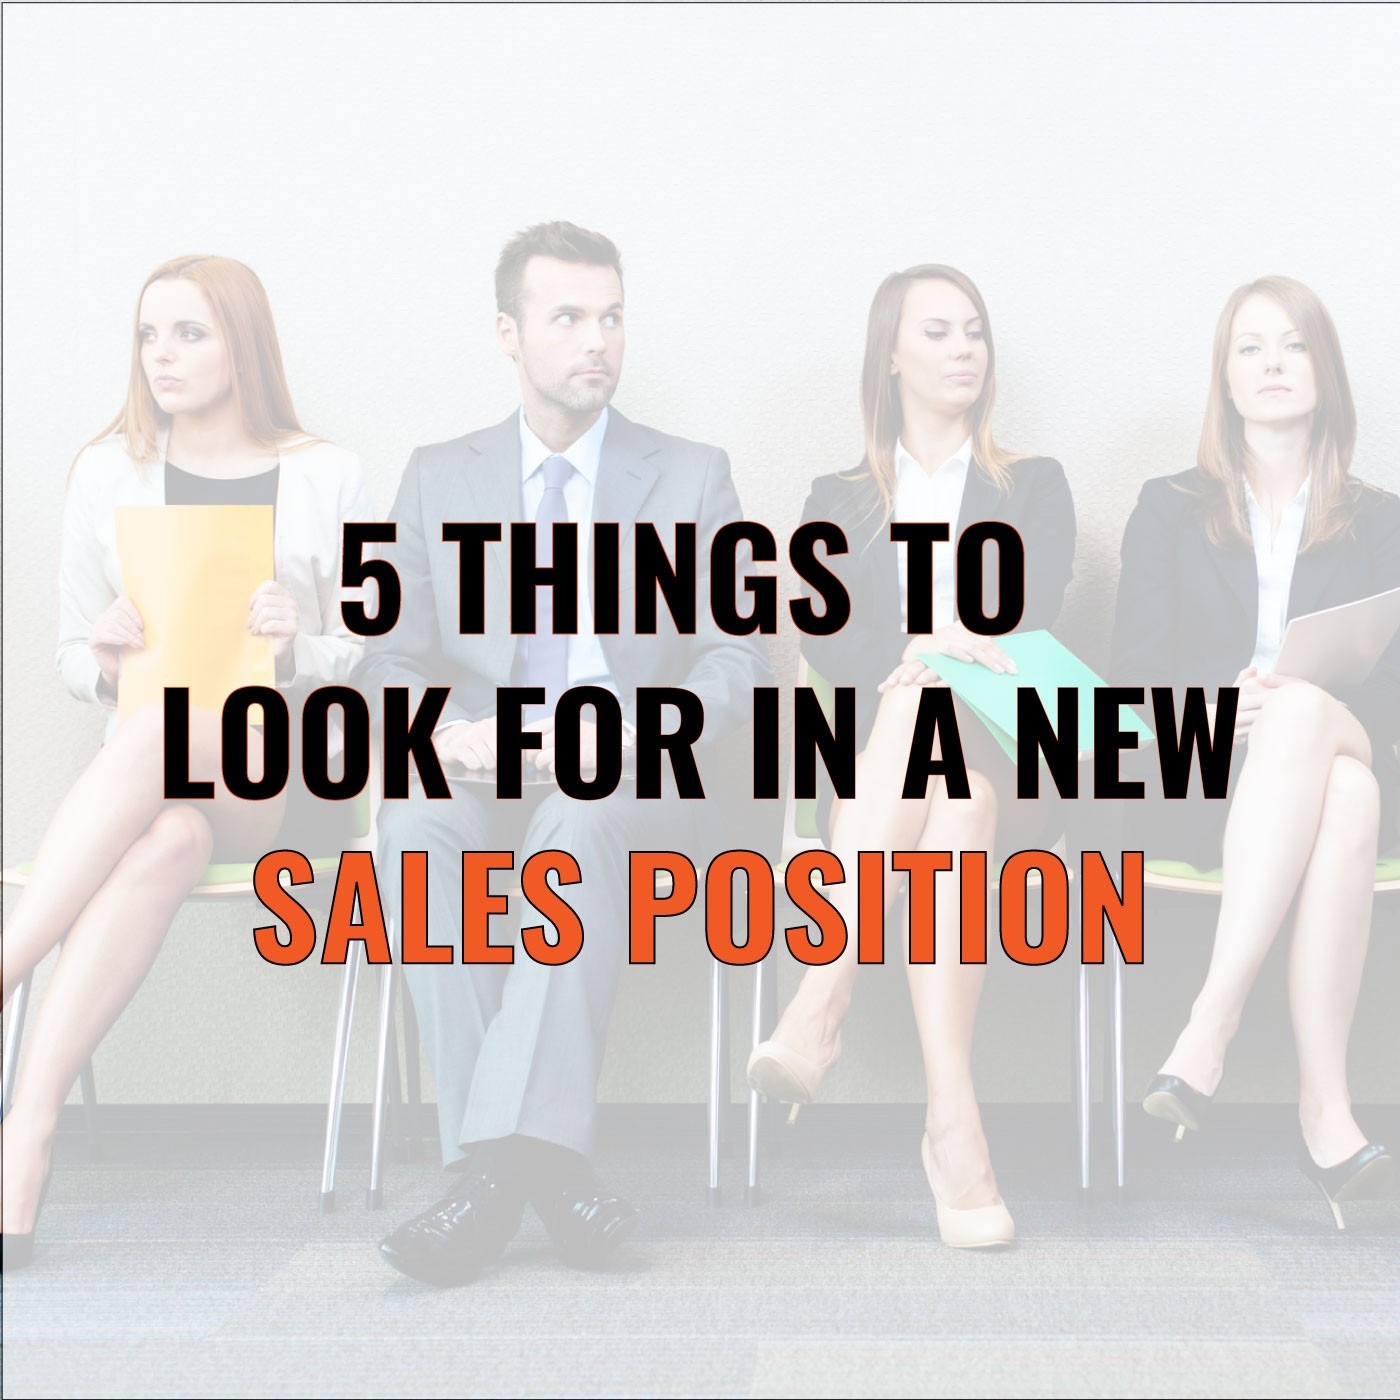 Brian Burns on 5 Things to Look for in a New Sales Position